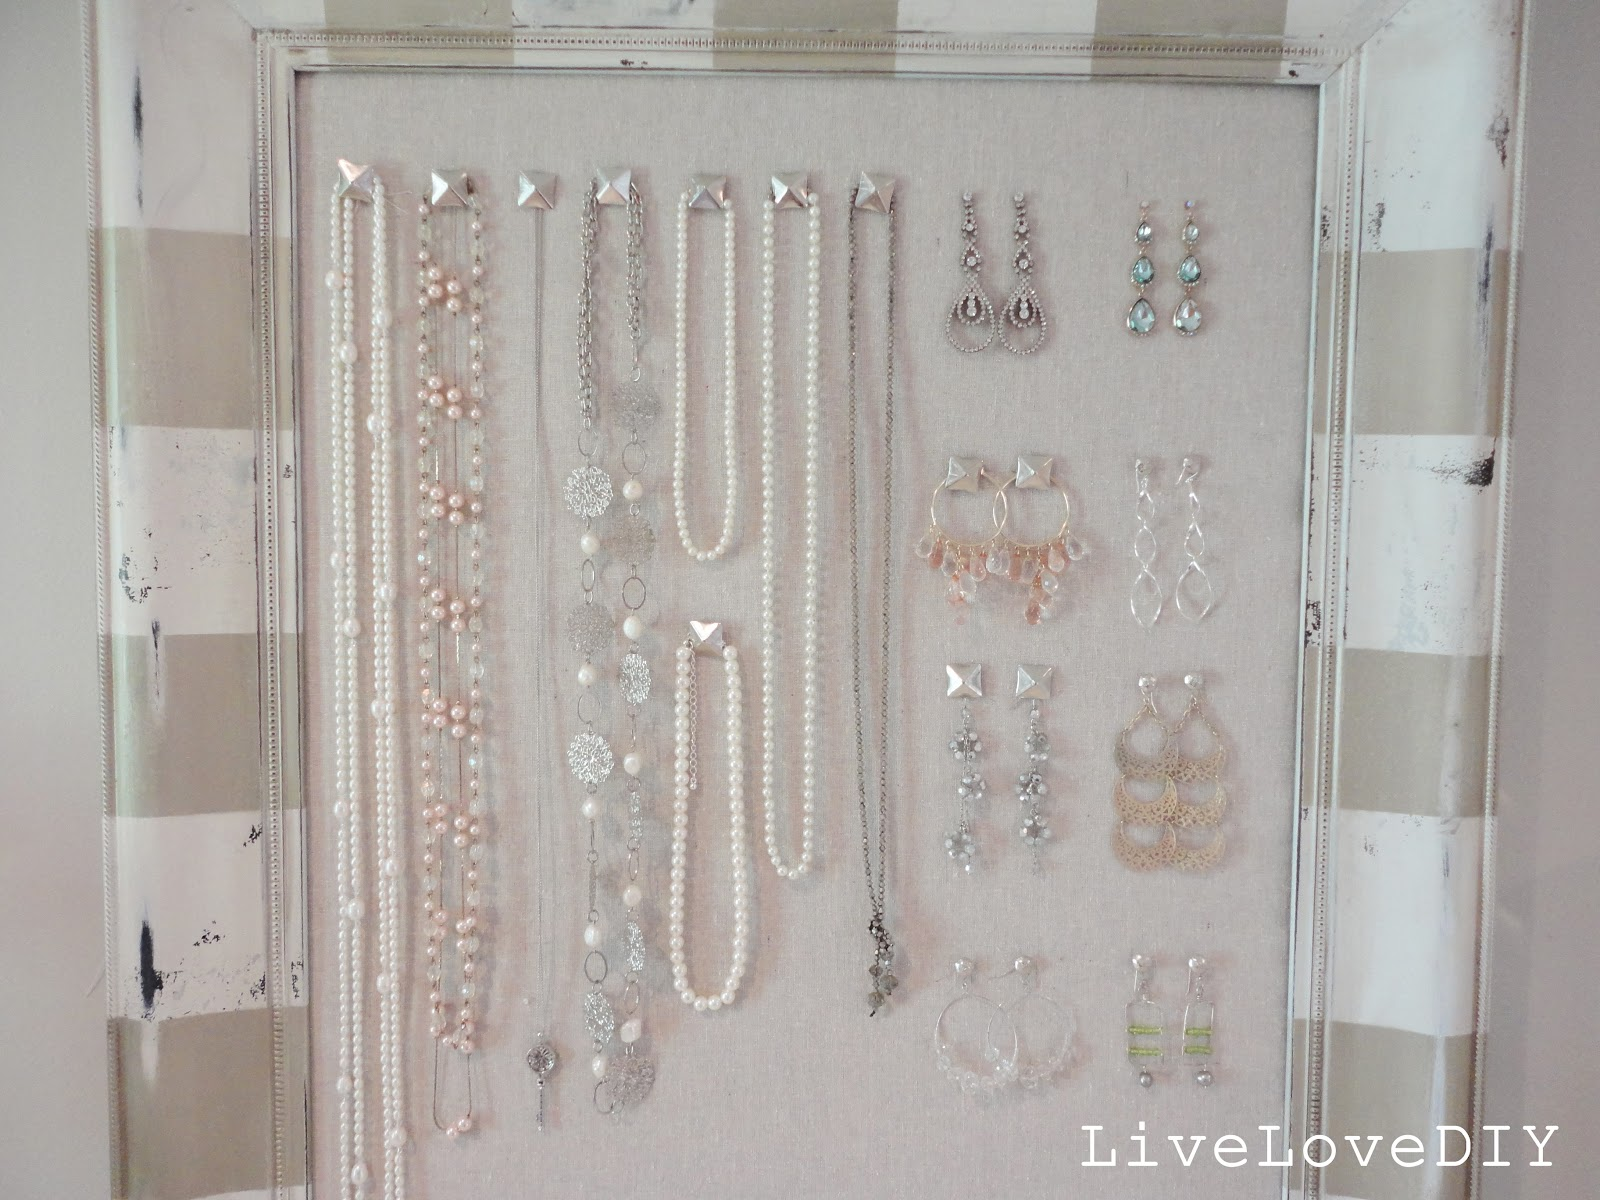 LiveLoveDIY DIY Corkboard Jewelry Organizer